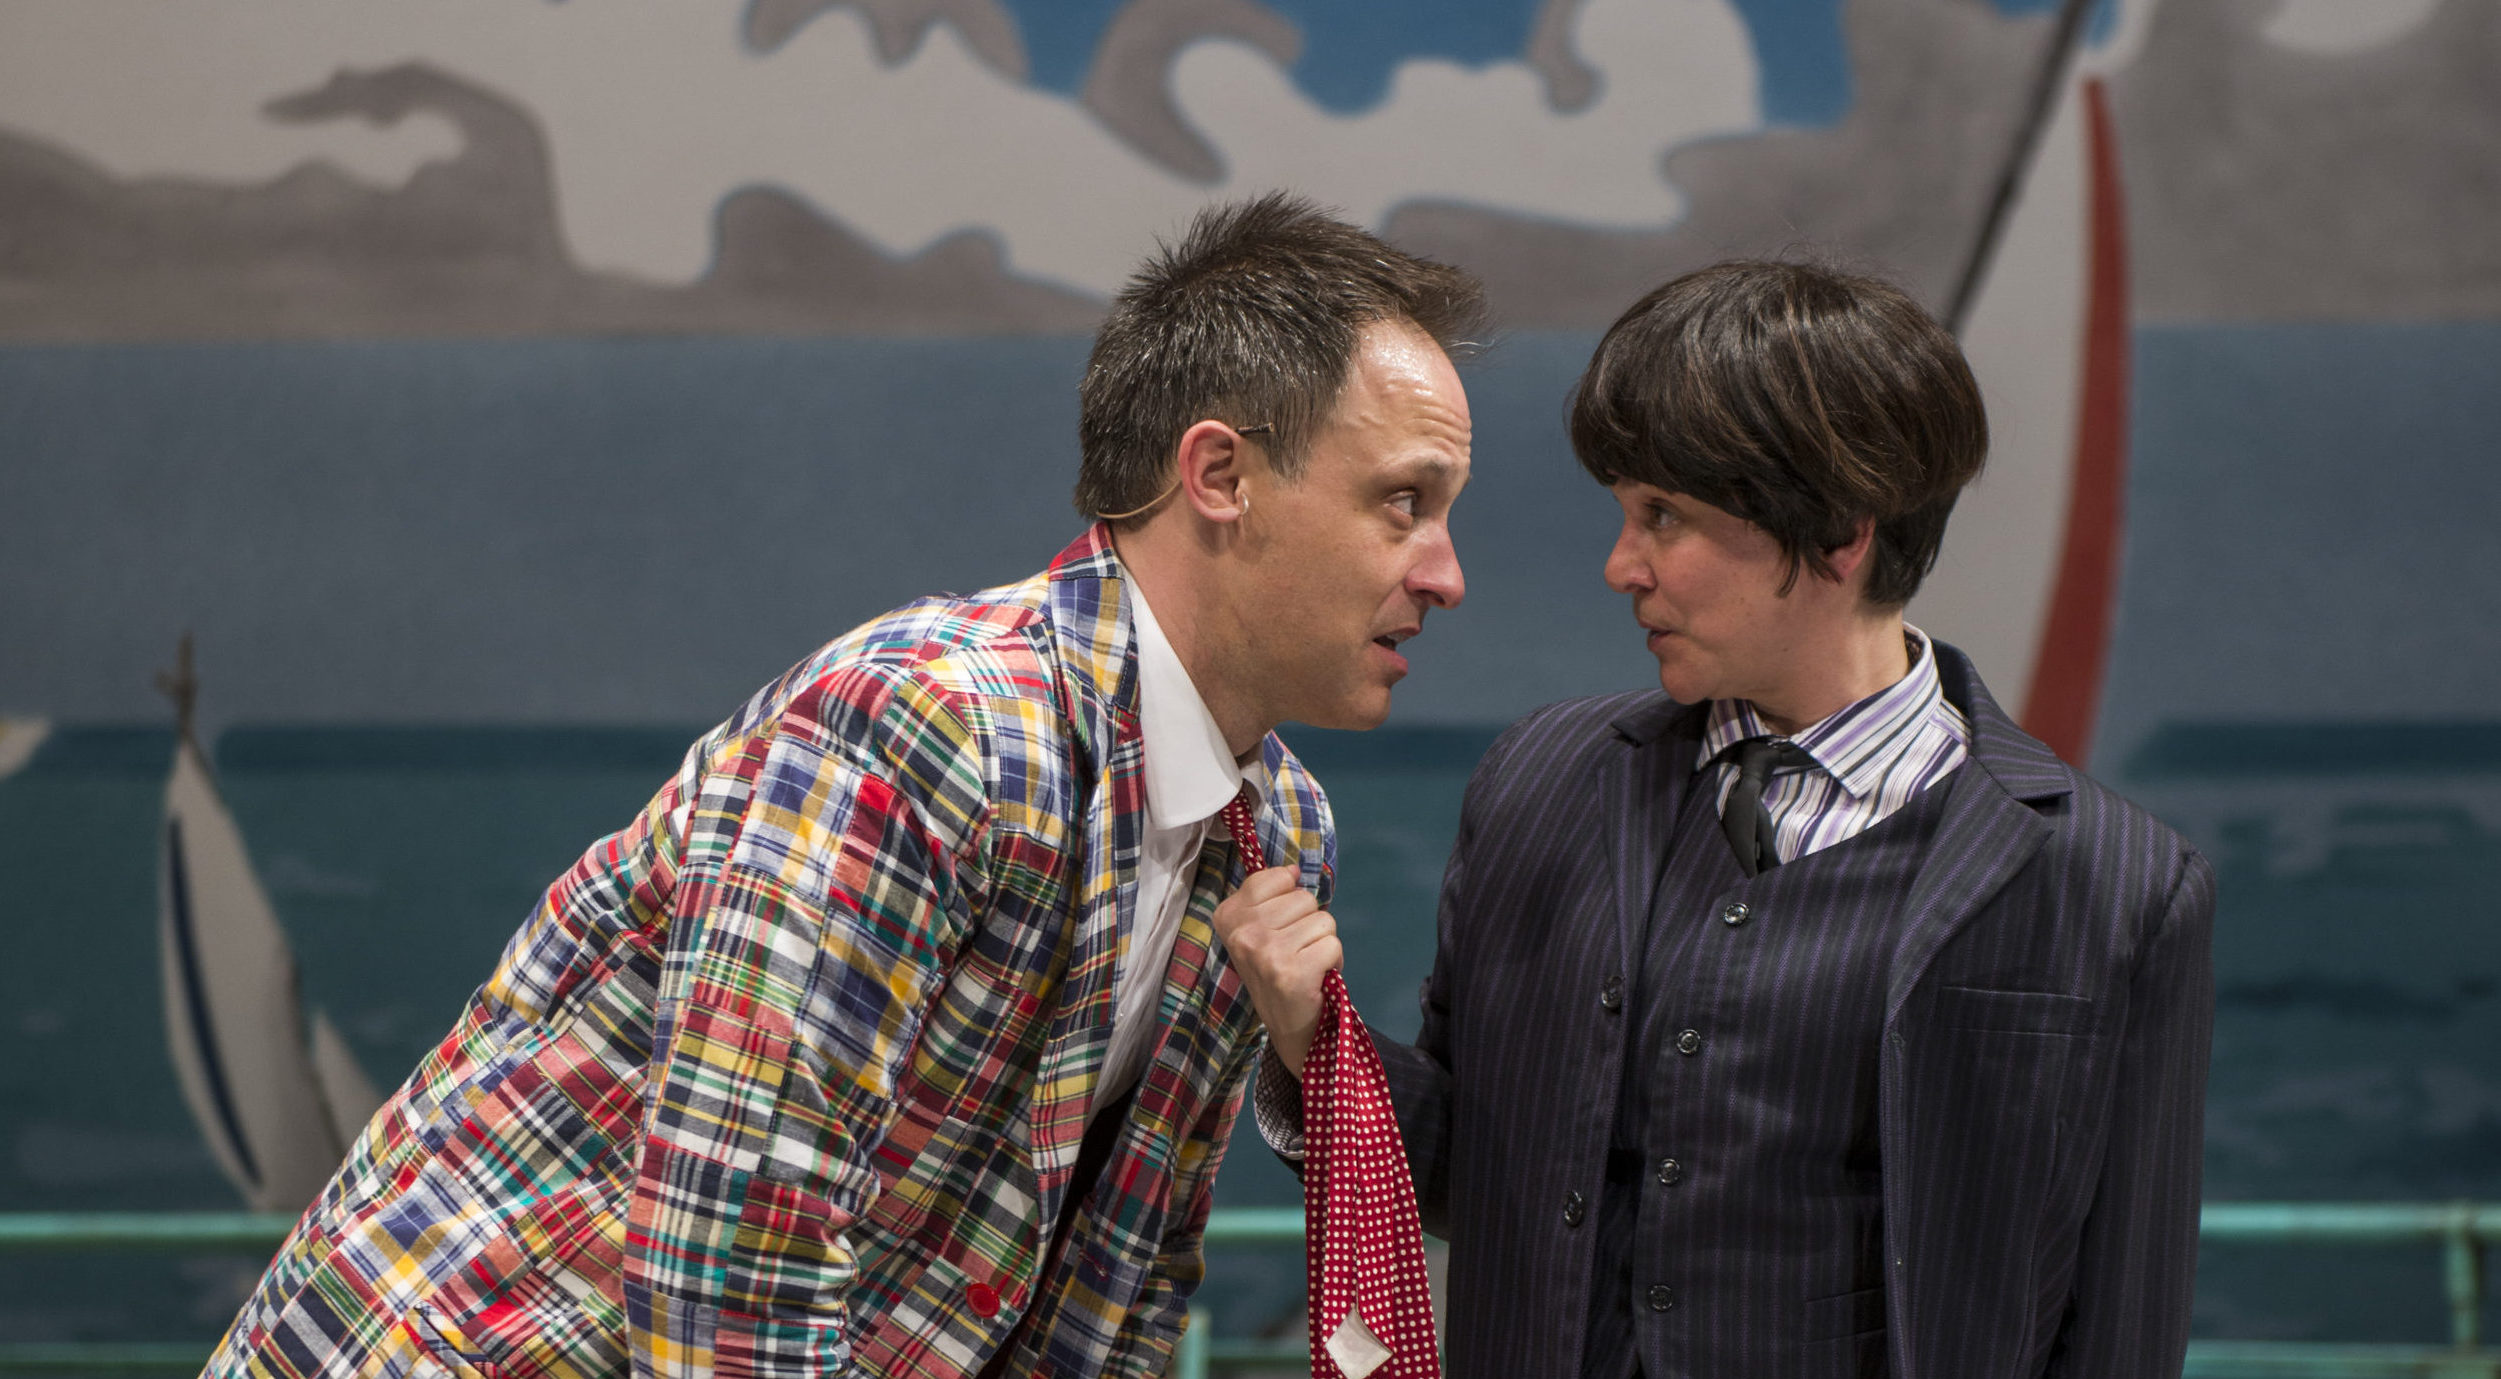 Hilarious ONE MAN, TWO GUVNORS Is Not to Be Missed